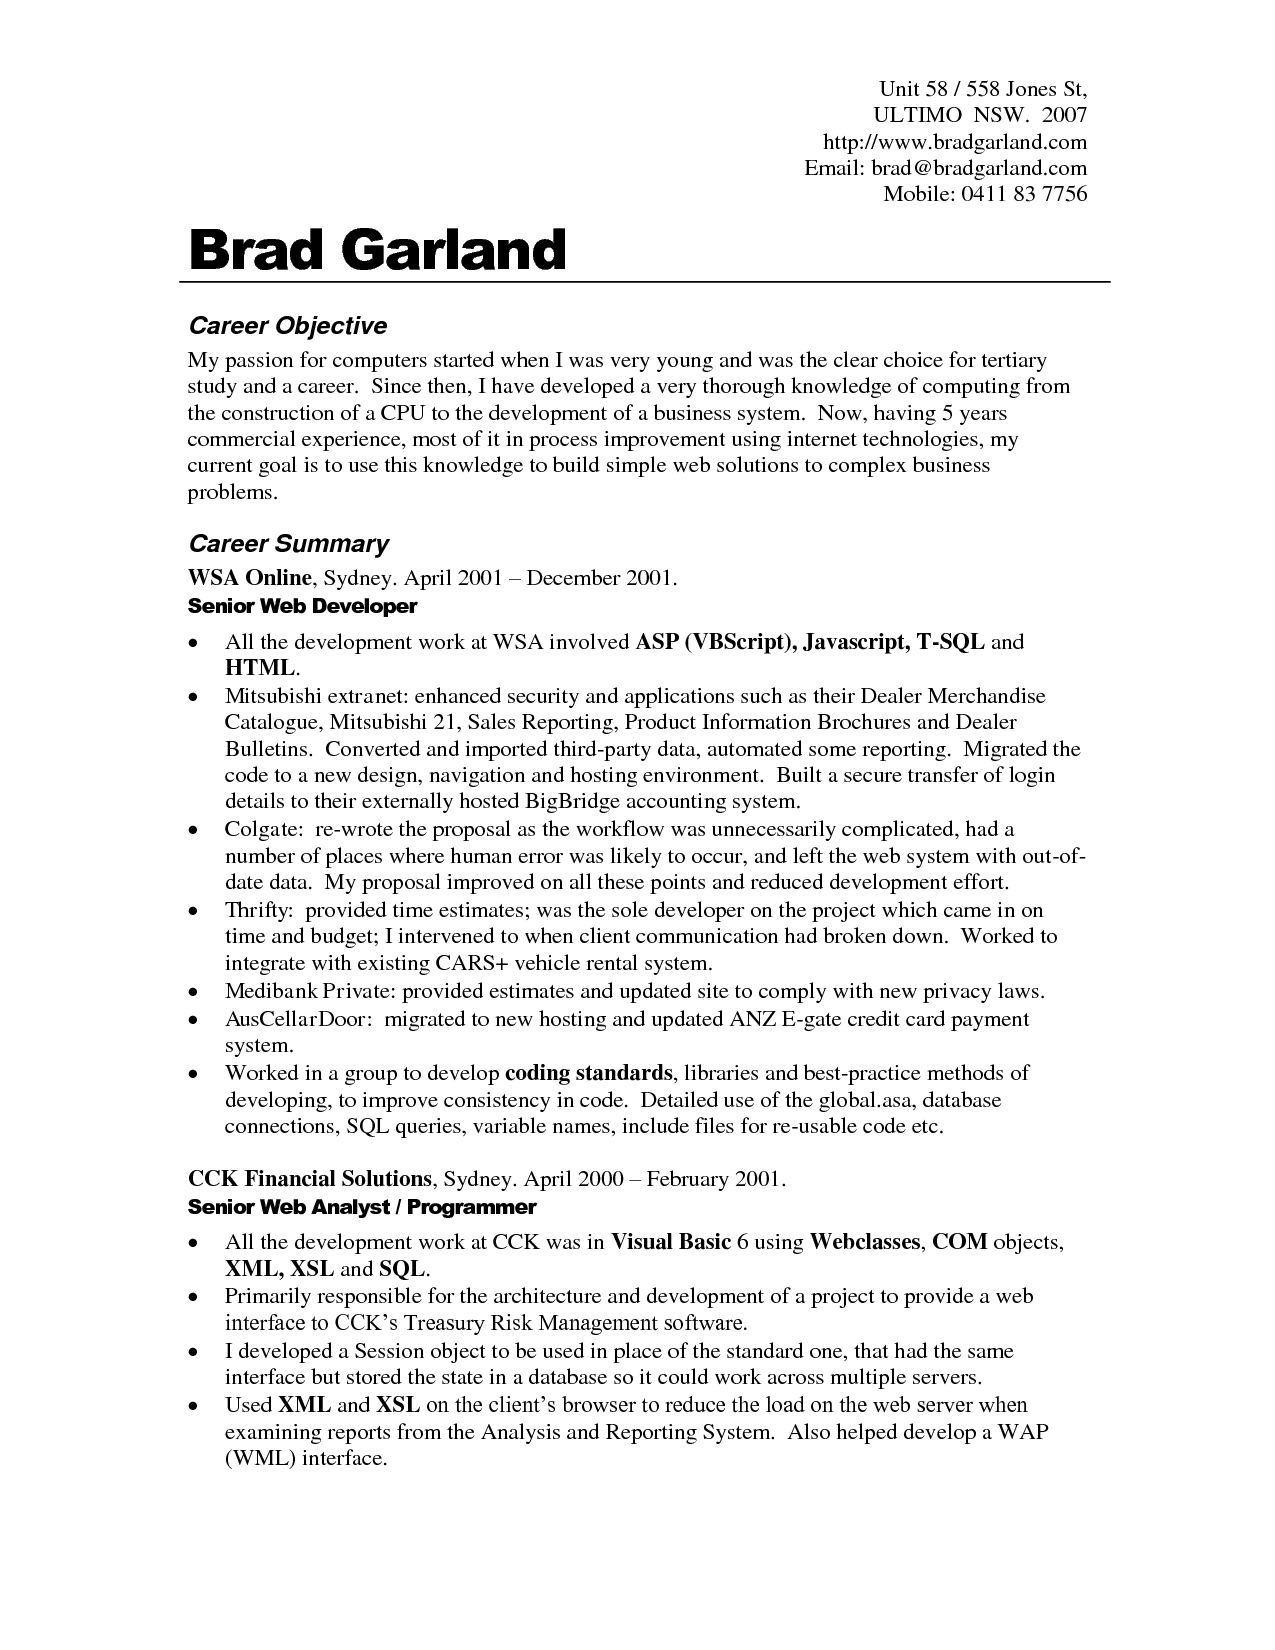 sample resume action verbs for lawyers formatting back post attorney samples entry level lawyer - Lawyer Resume Examples